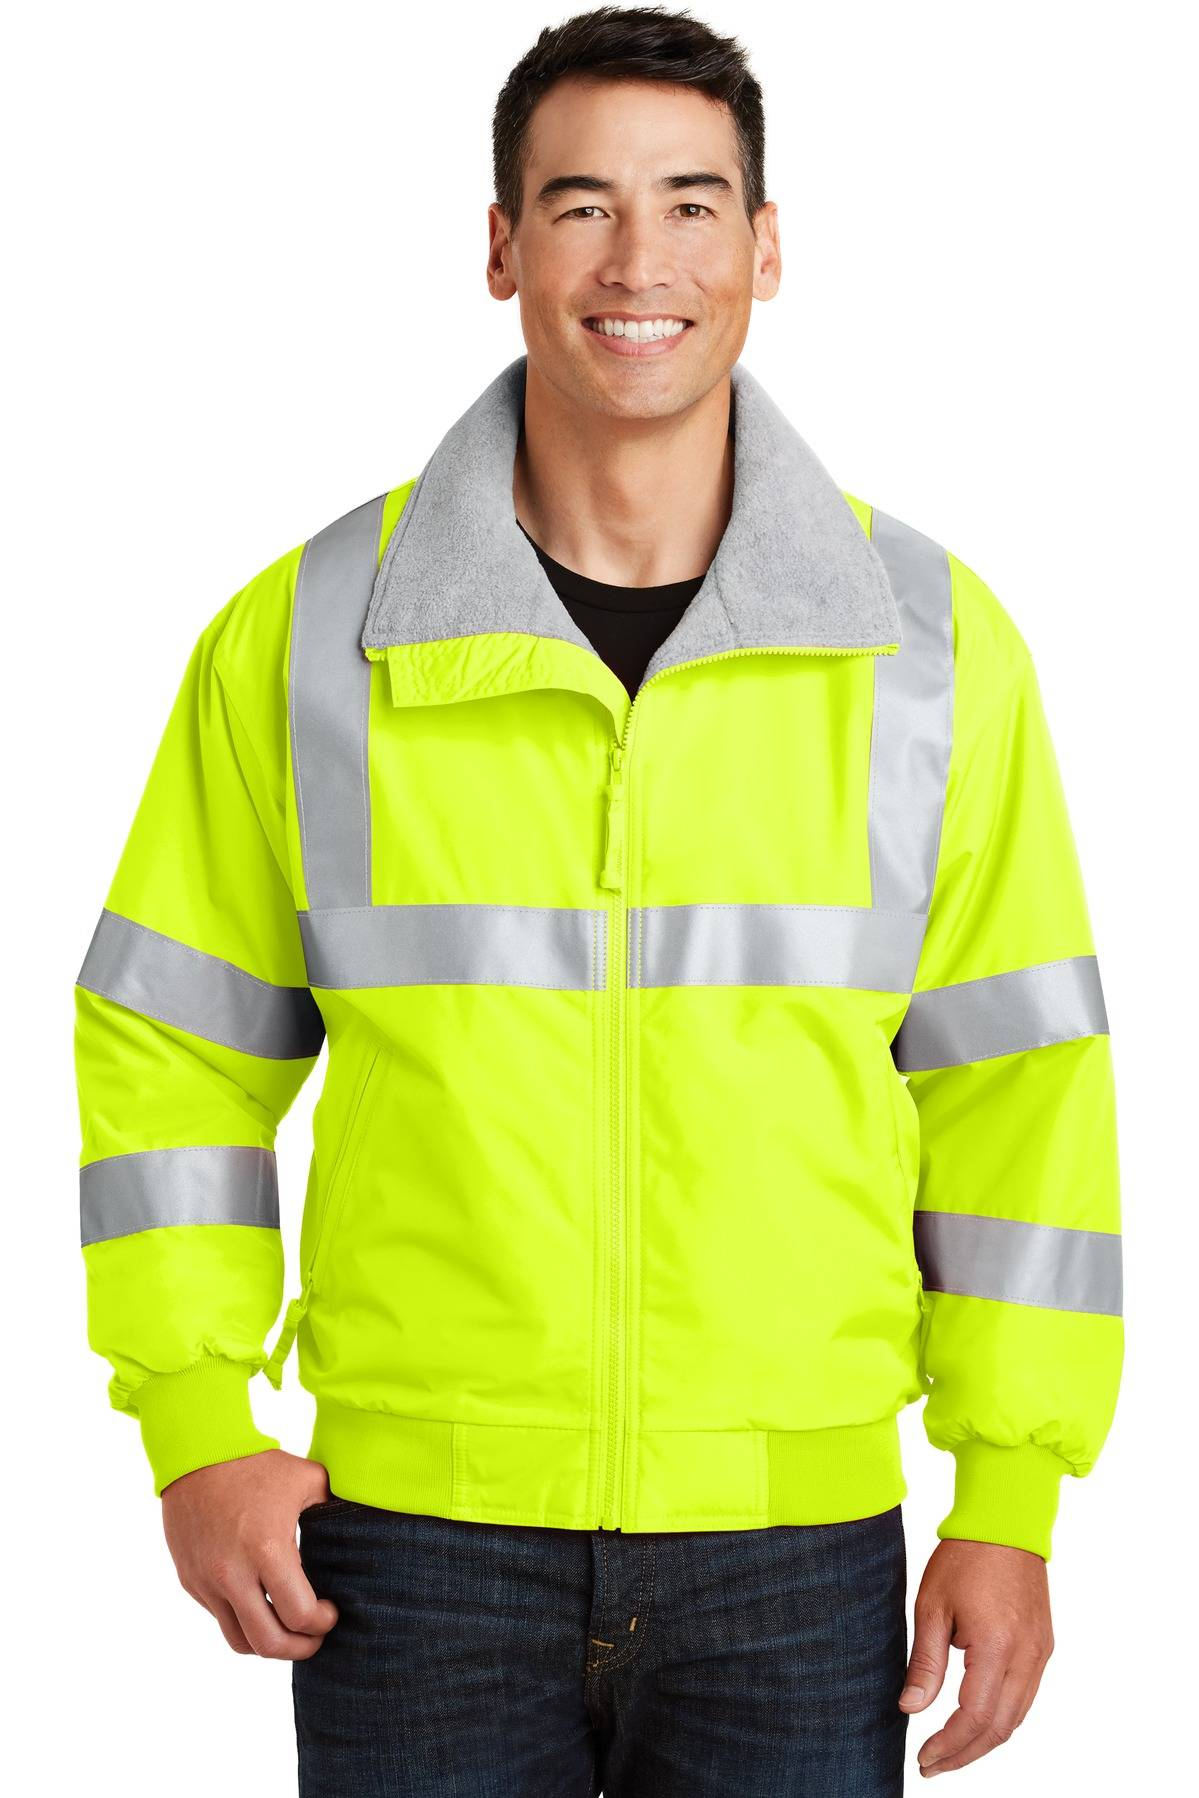 Port Authority SRJ754 Enhanced Visibility Challenger Jacket with Reflective Taping